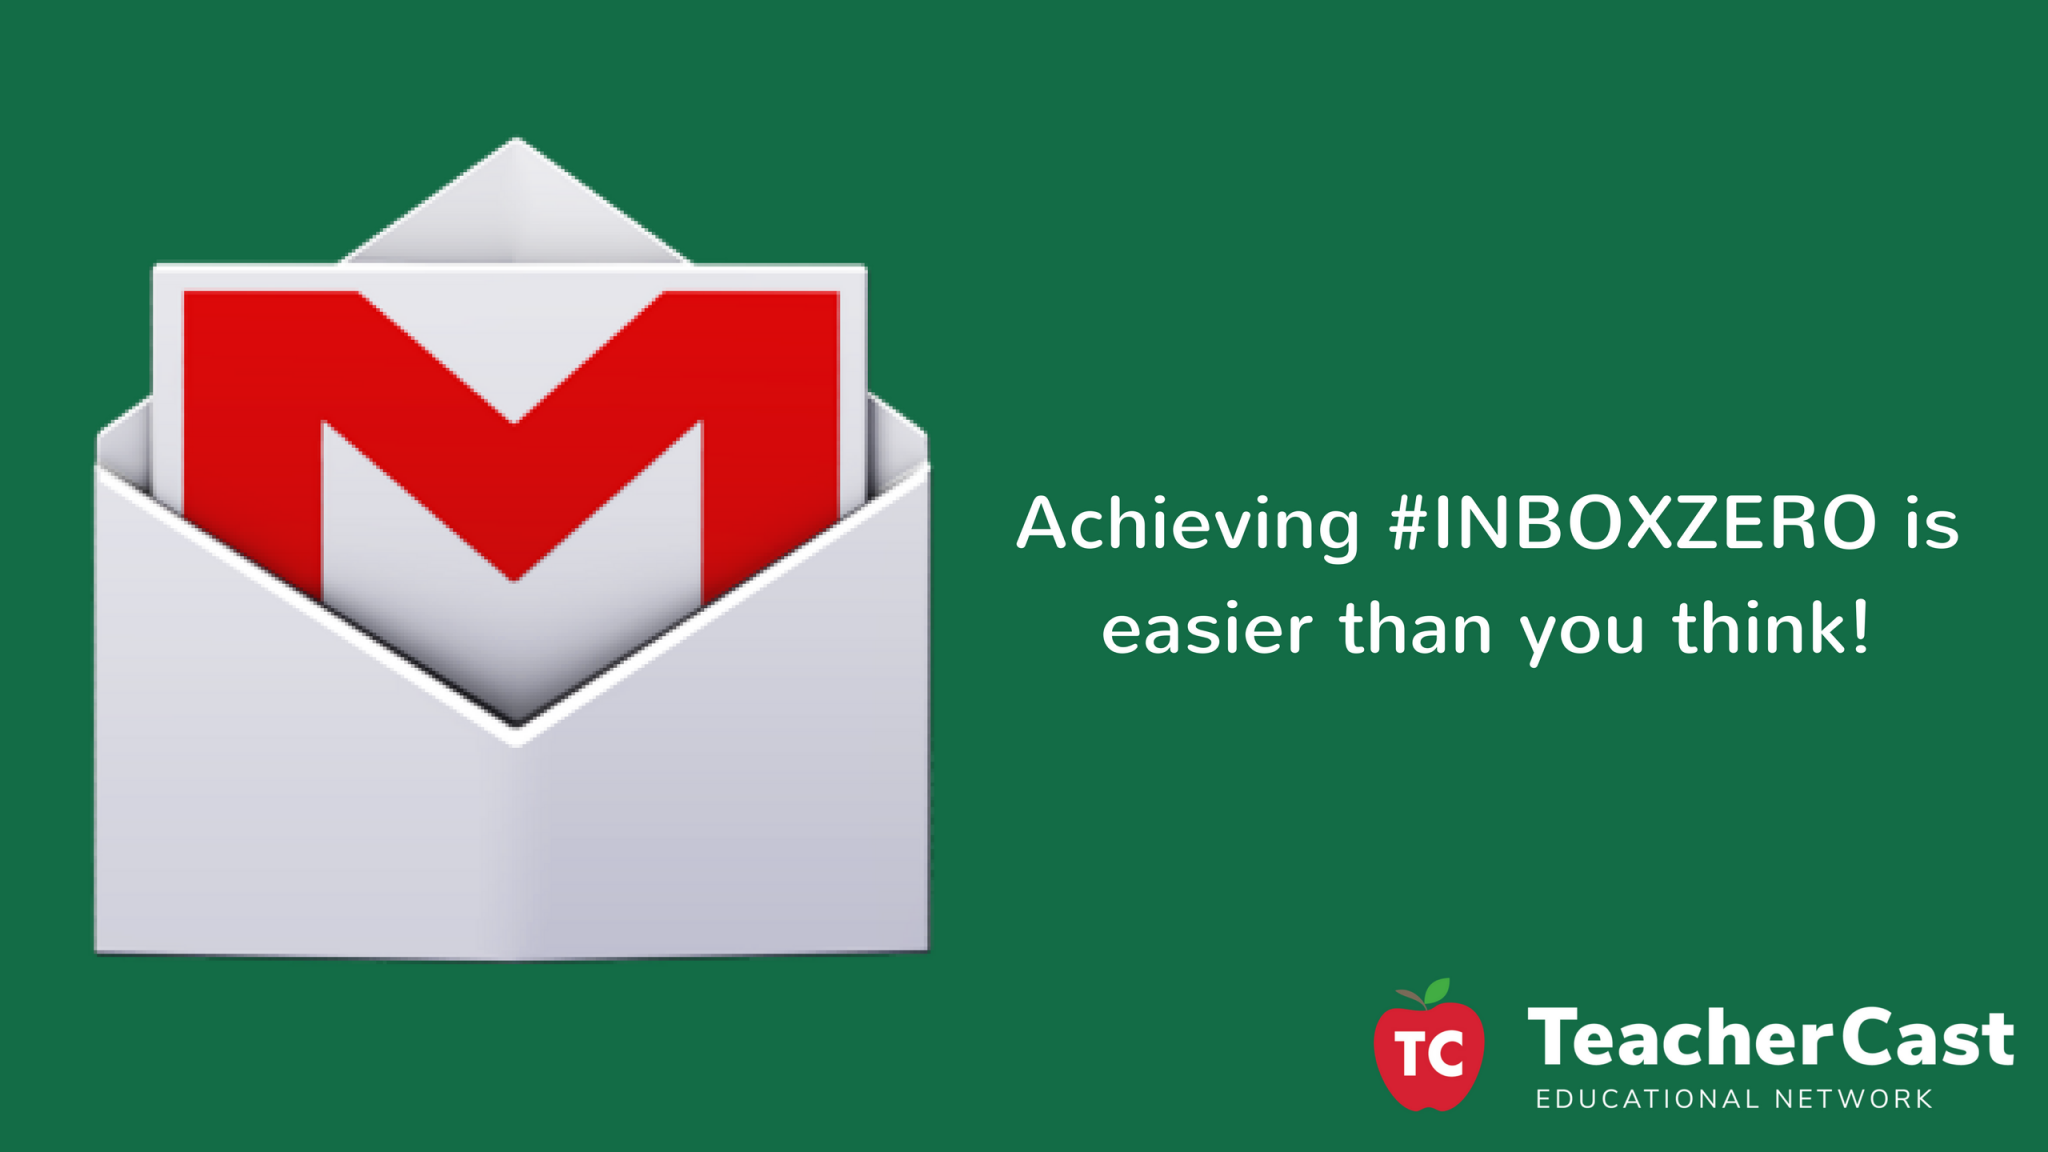 Gmail Workshop: How to achieve Inbox Zero